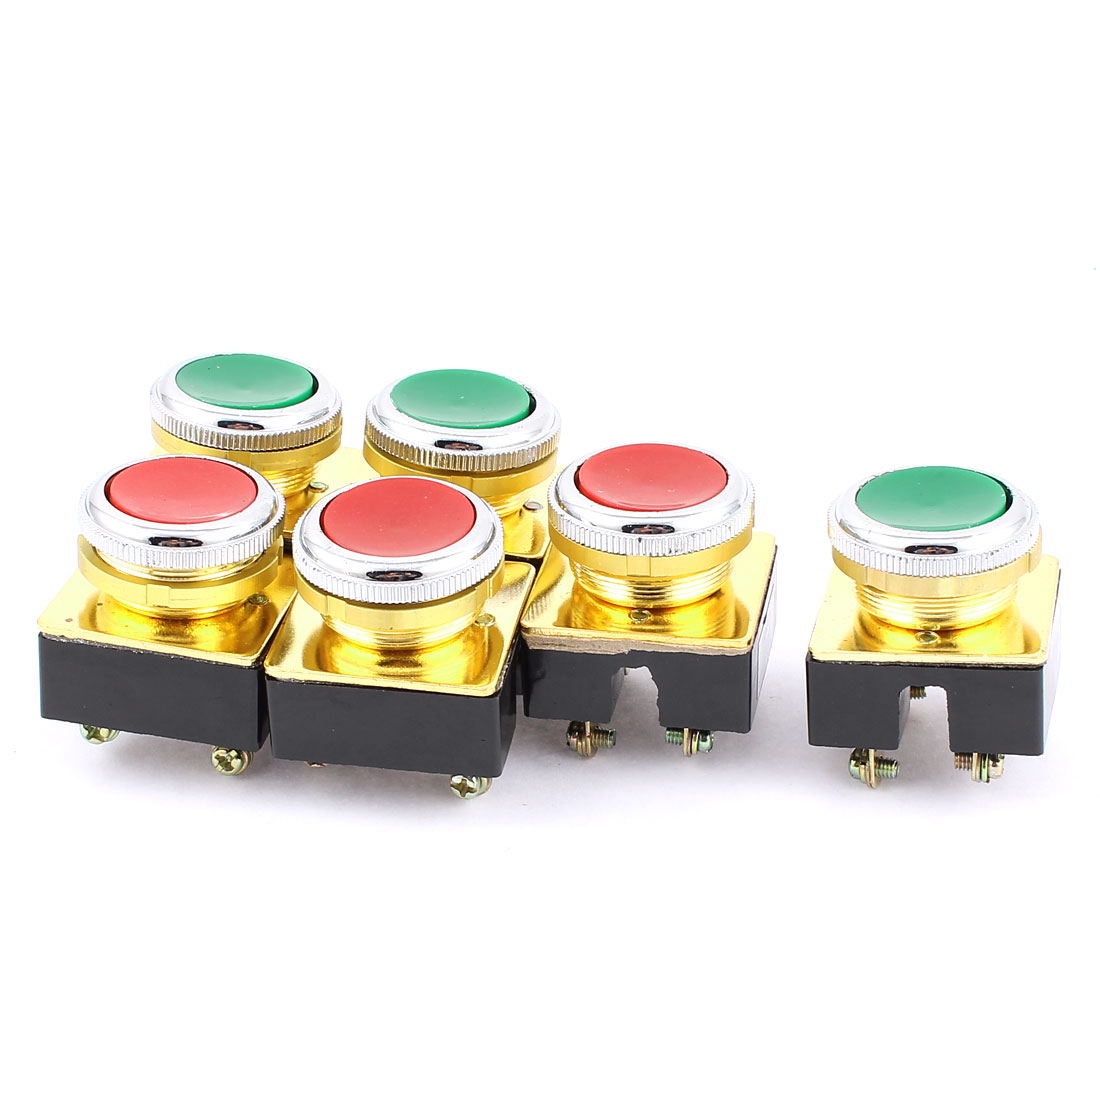 AC 380V DPST 4-Pin Momentary Red Green Button Pushbutton Switch 6PCS